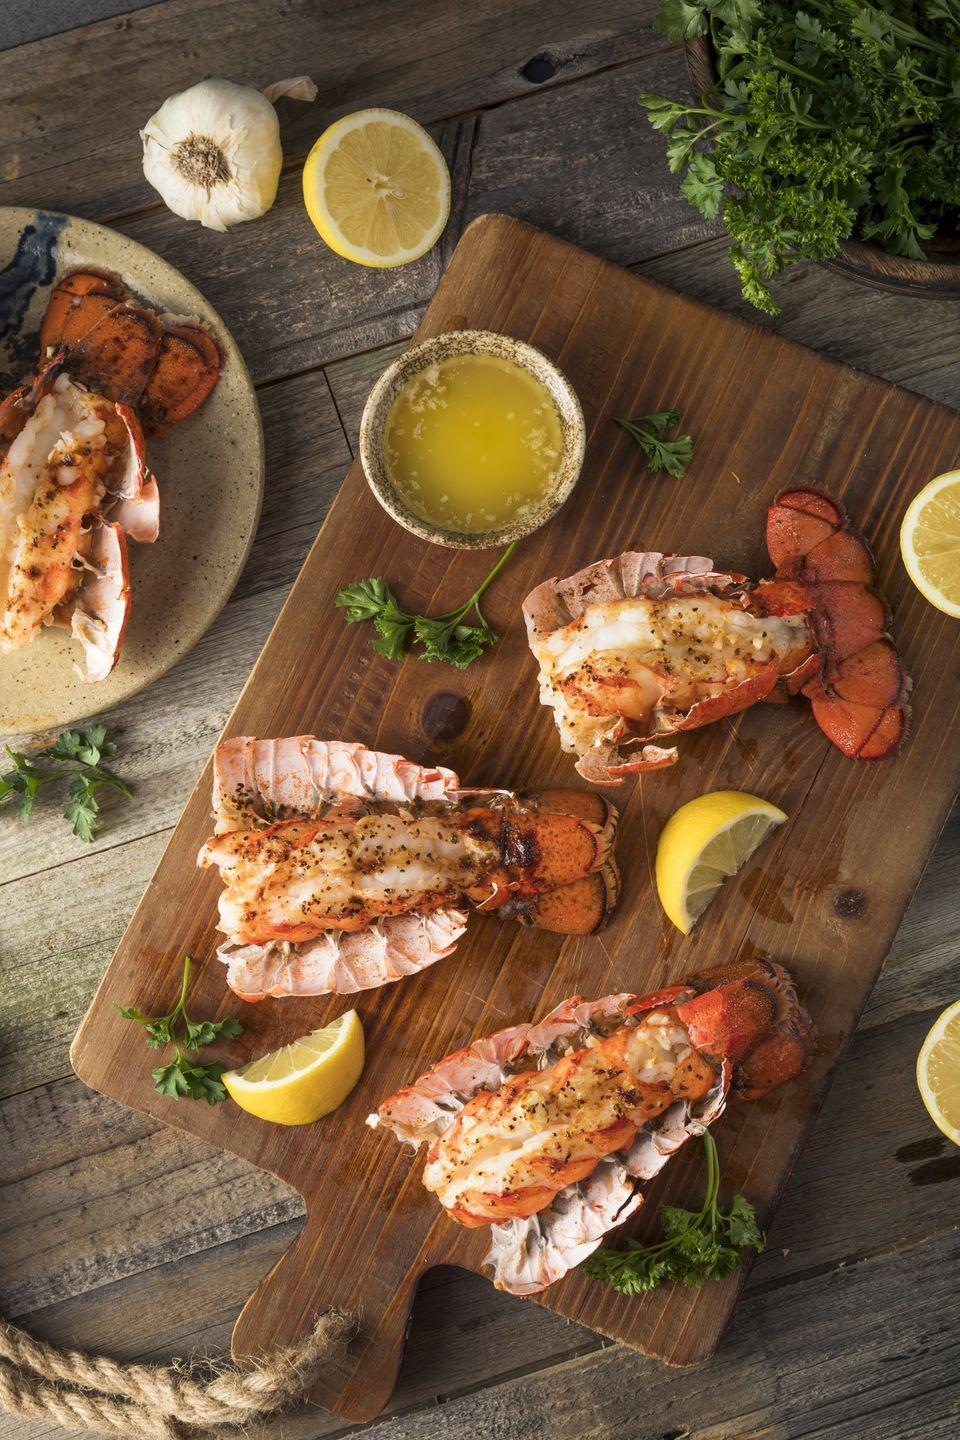 """<p>You may want to rethink any fancy <a href=""""https://www.countryliving.com/food-drinks/recipes/g1078/new-years-food/"""" rel=""""nofollow noopener"""" target=""""_blank"""" data-ylk=""""slk:New Year's Eve food"""" class=""""link rapid-noclick-resp"""">New Year's Eve food</a> ideas that include lobster. Many cultures believe that eating lobsters before midnight is bad luck because they move backwards, therefore setting you up for a year of setbacks. </p>"""